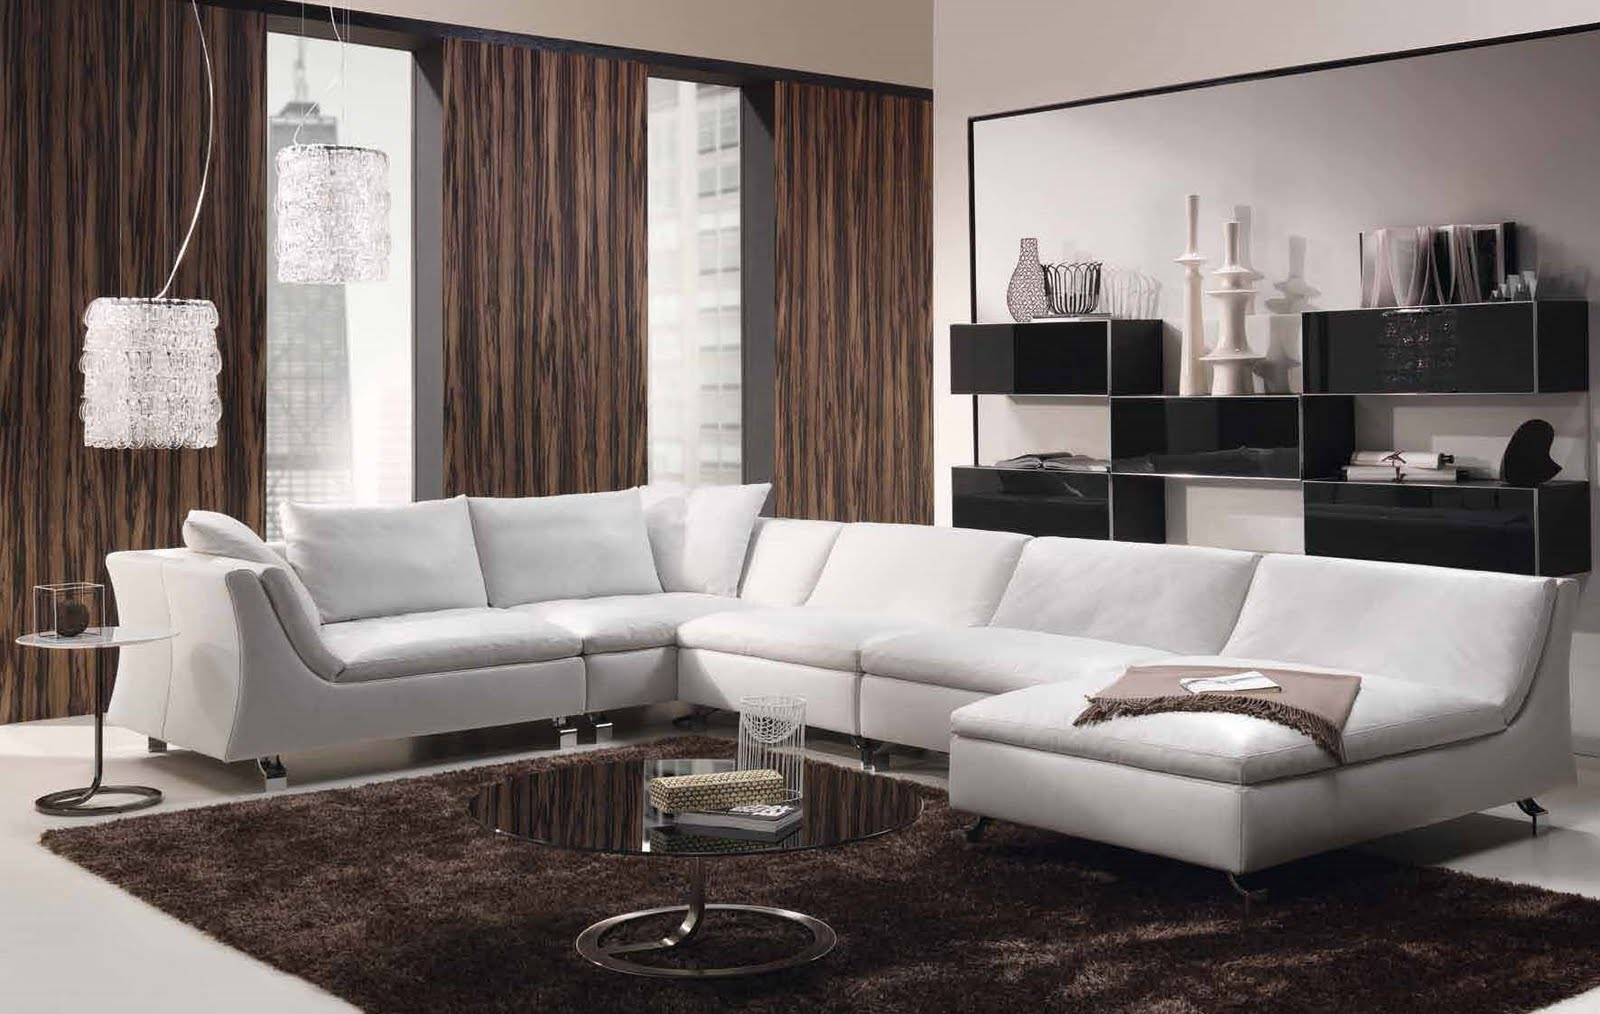 Future House Design: Modern Living Room Interior Design Styles ...